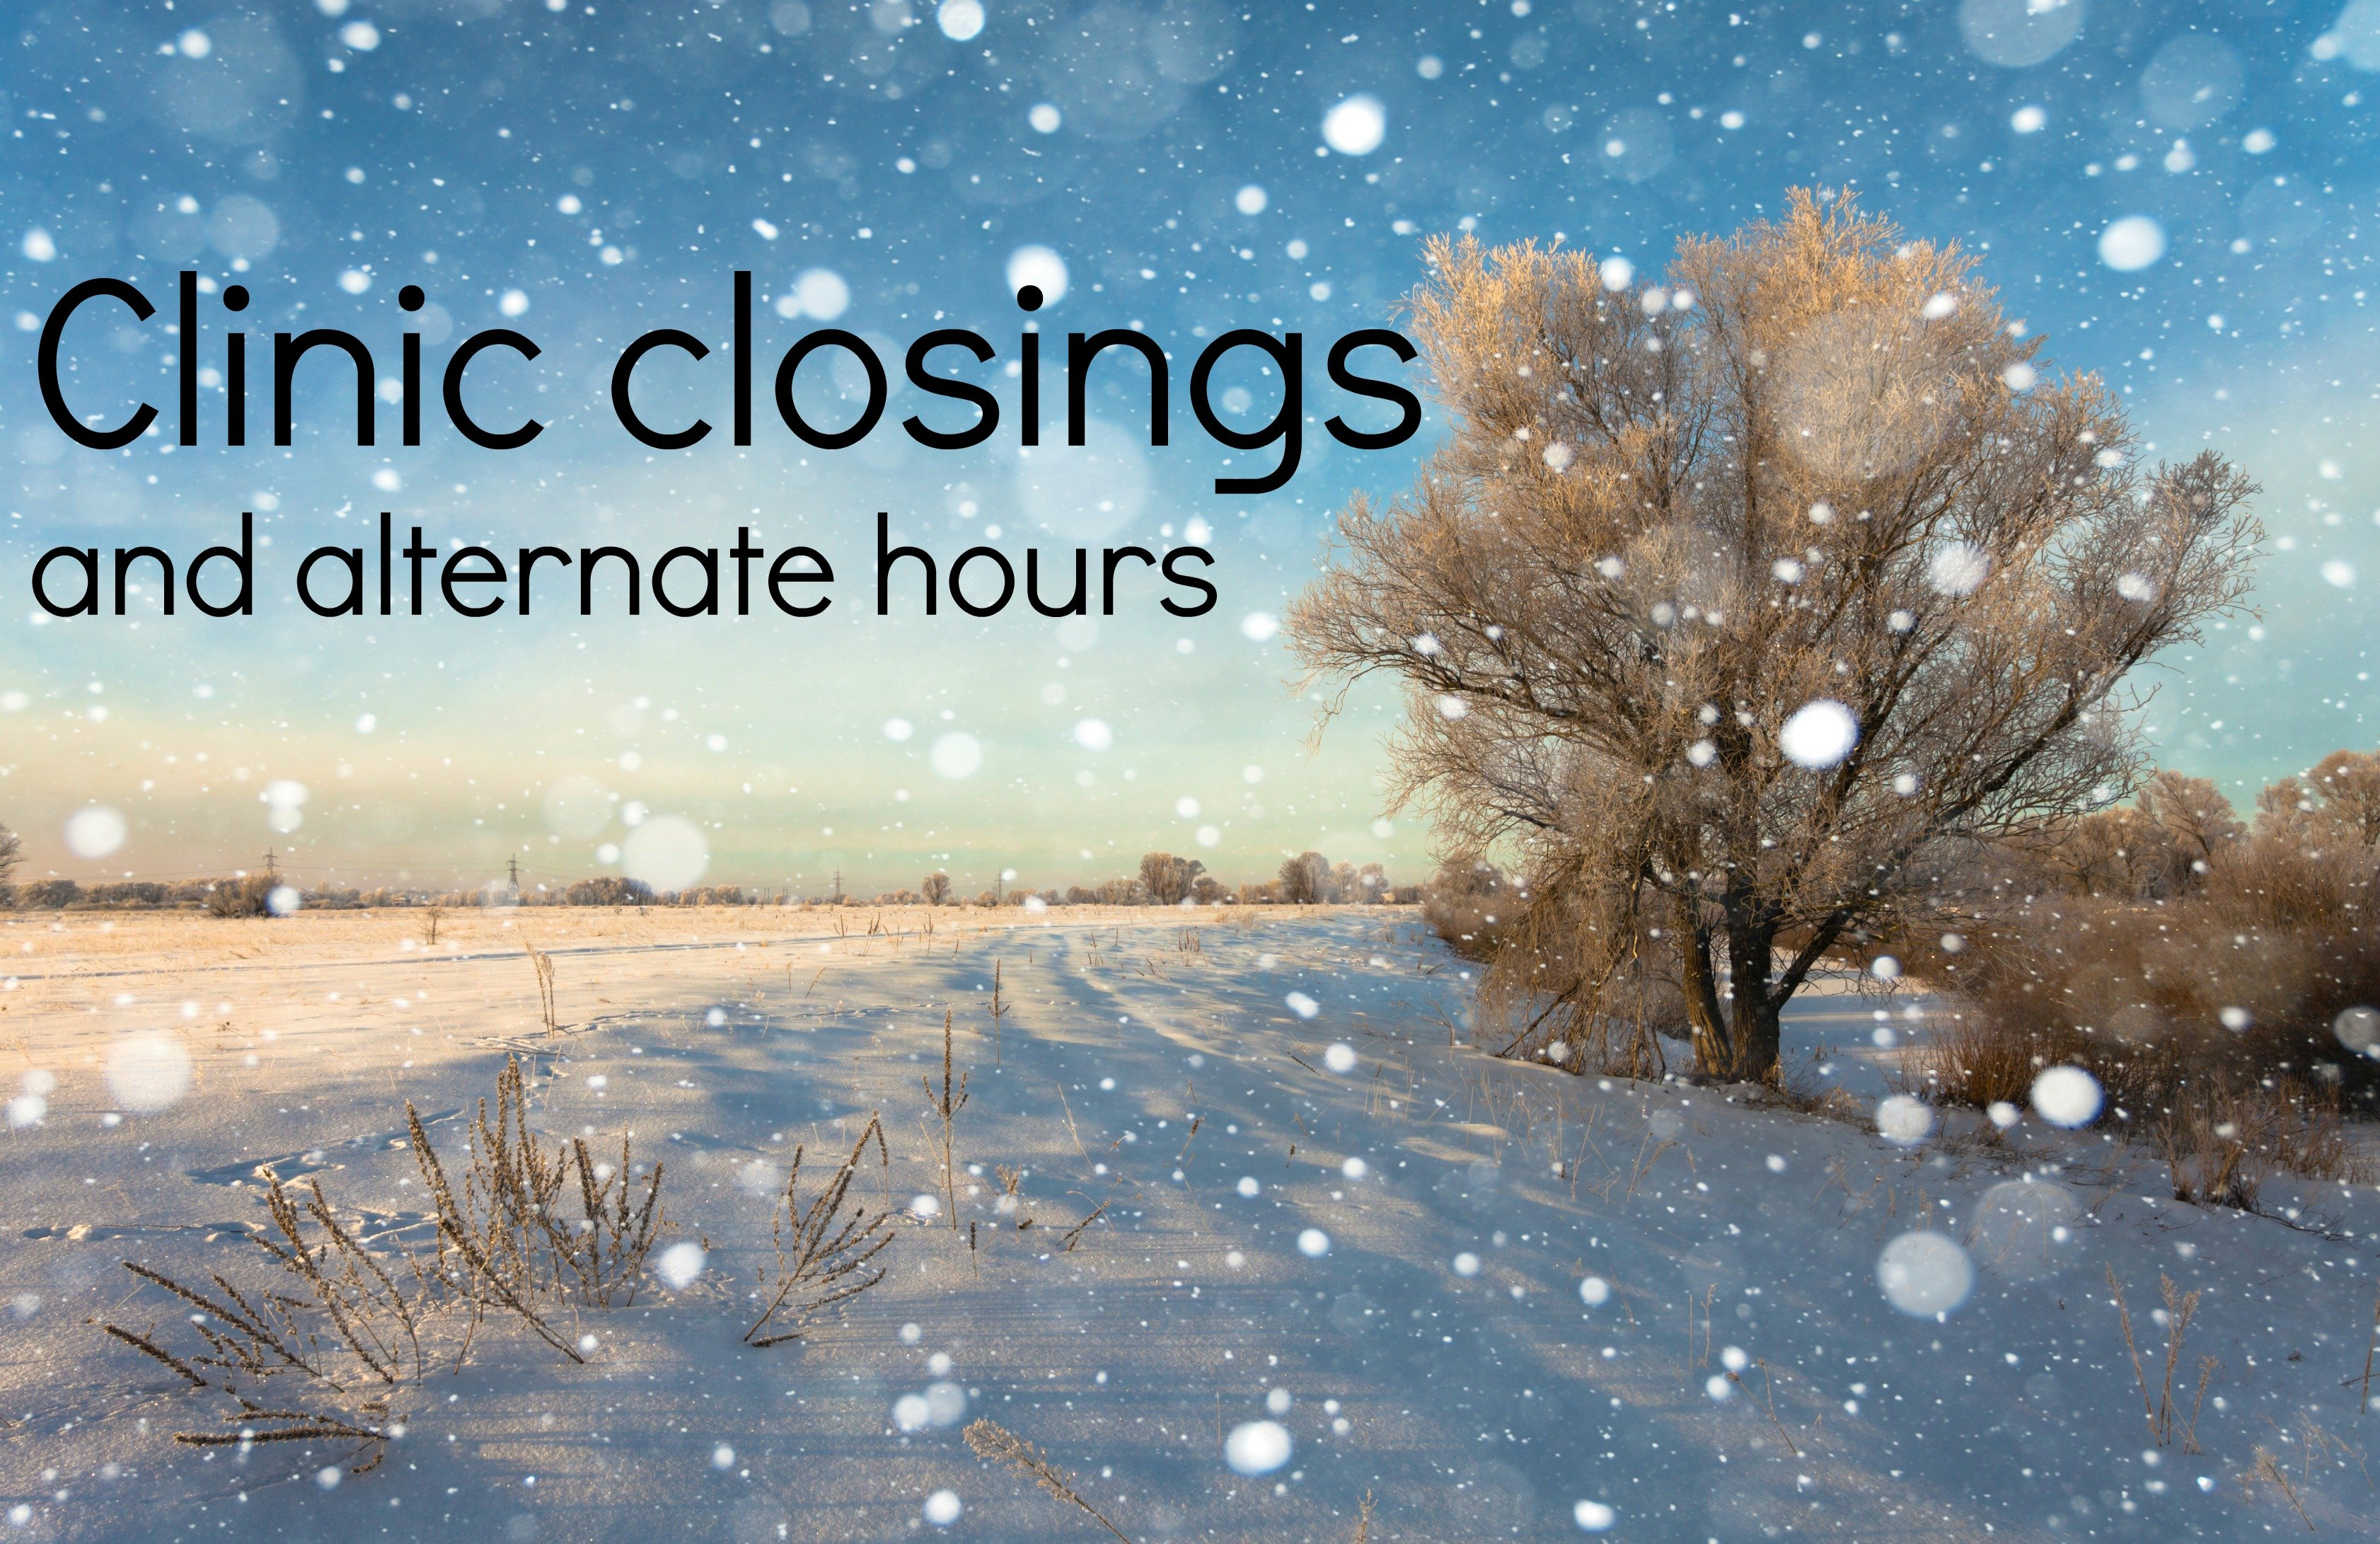 """A photo shows snow and the words """"clinic closings and alternate hours."""""""